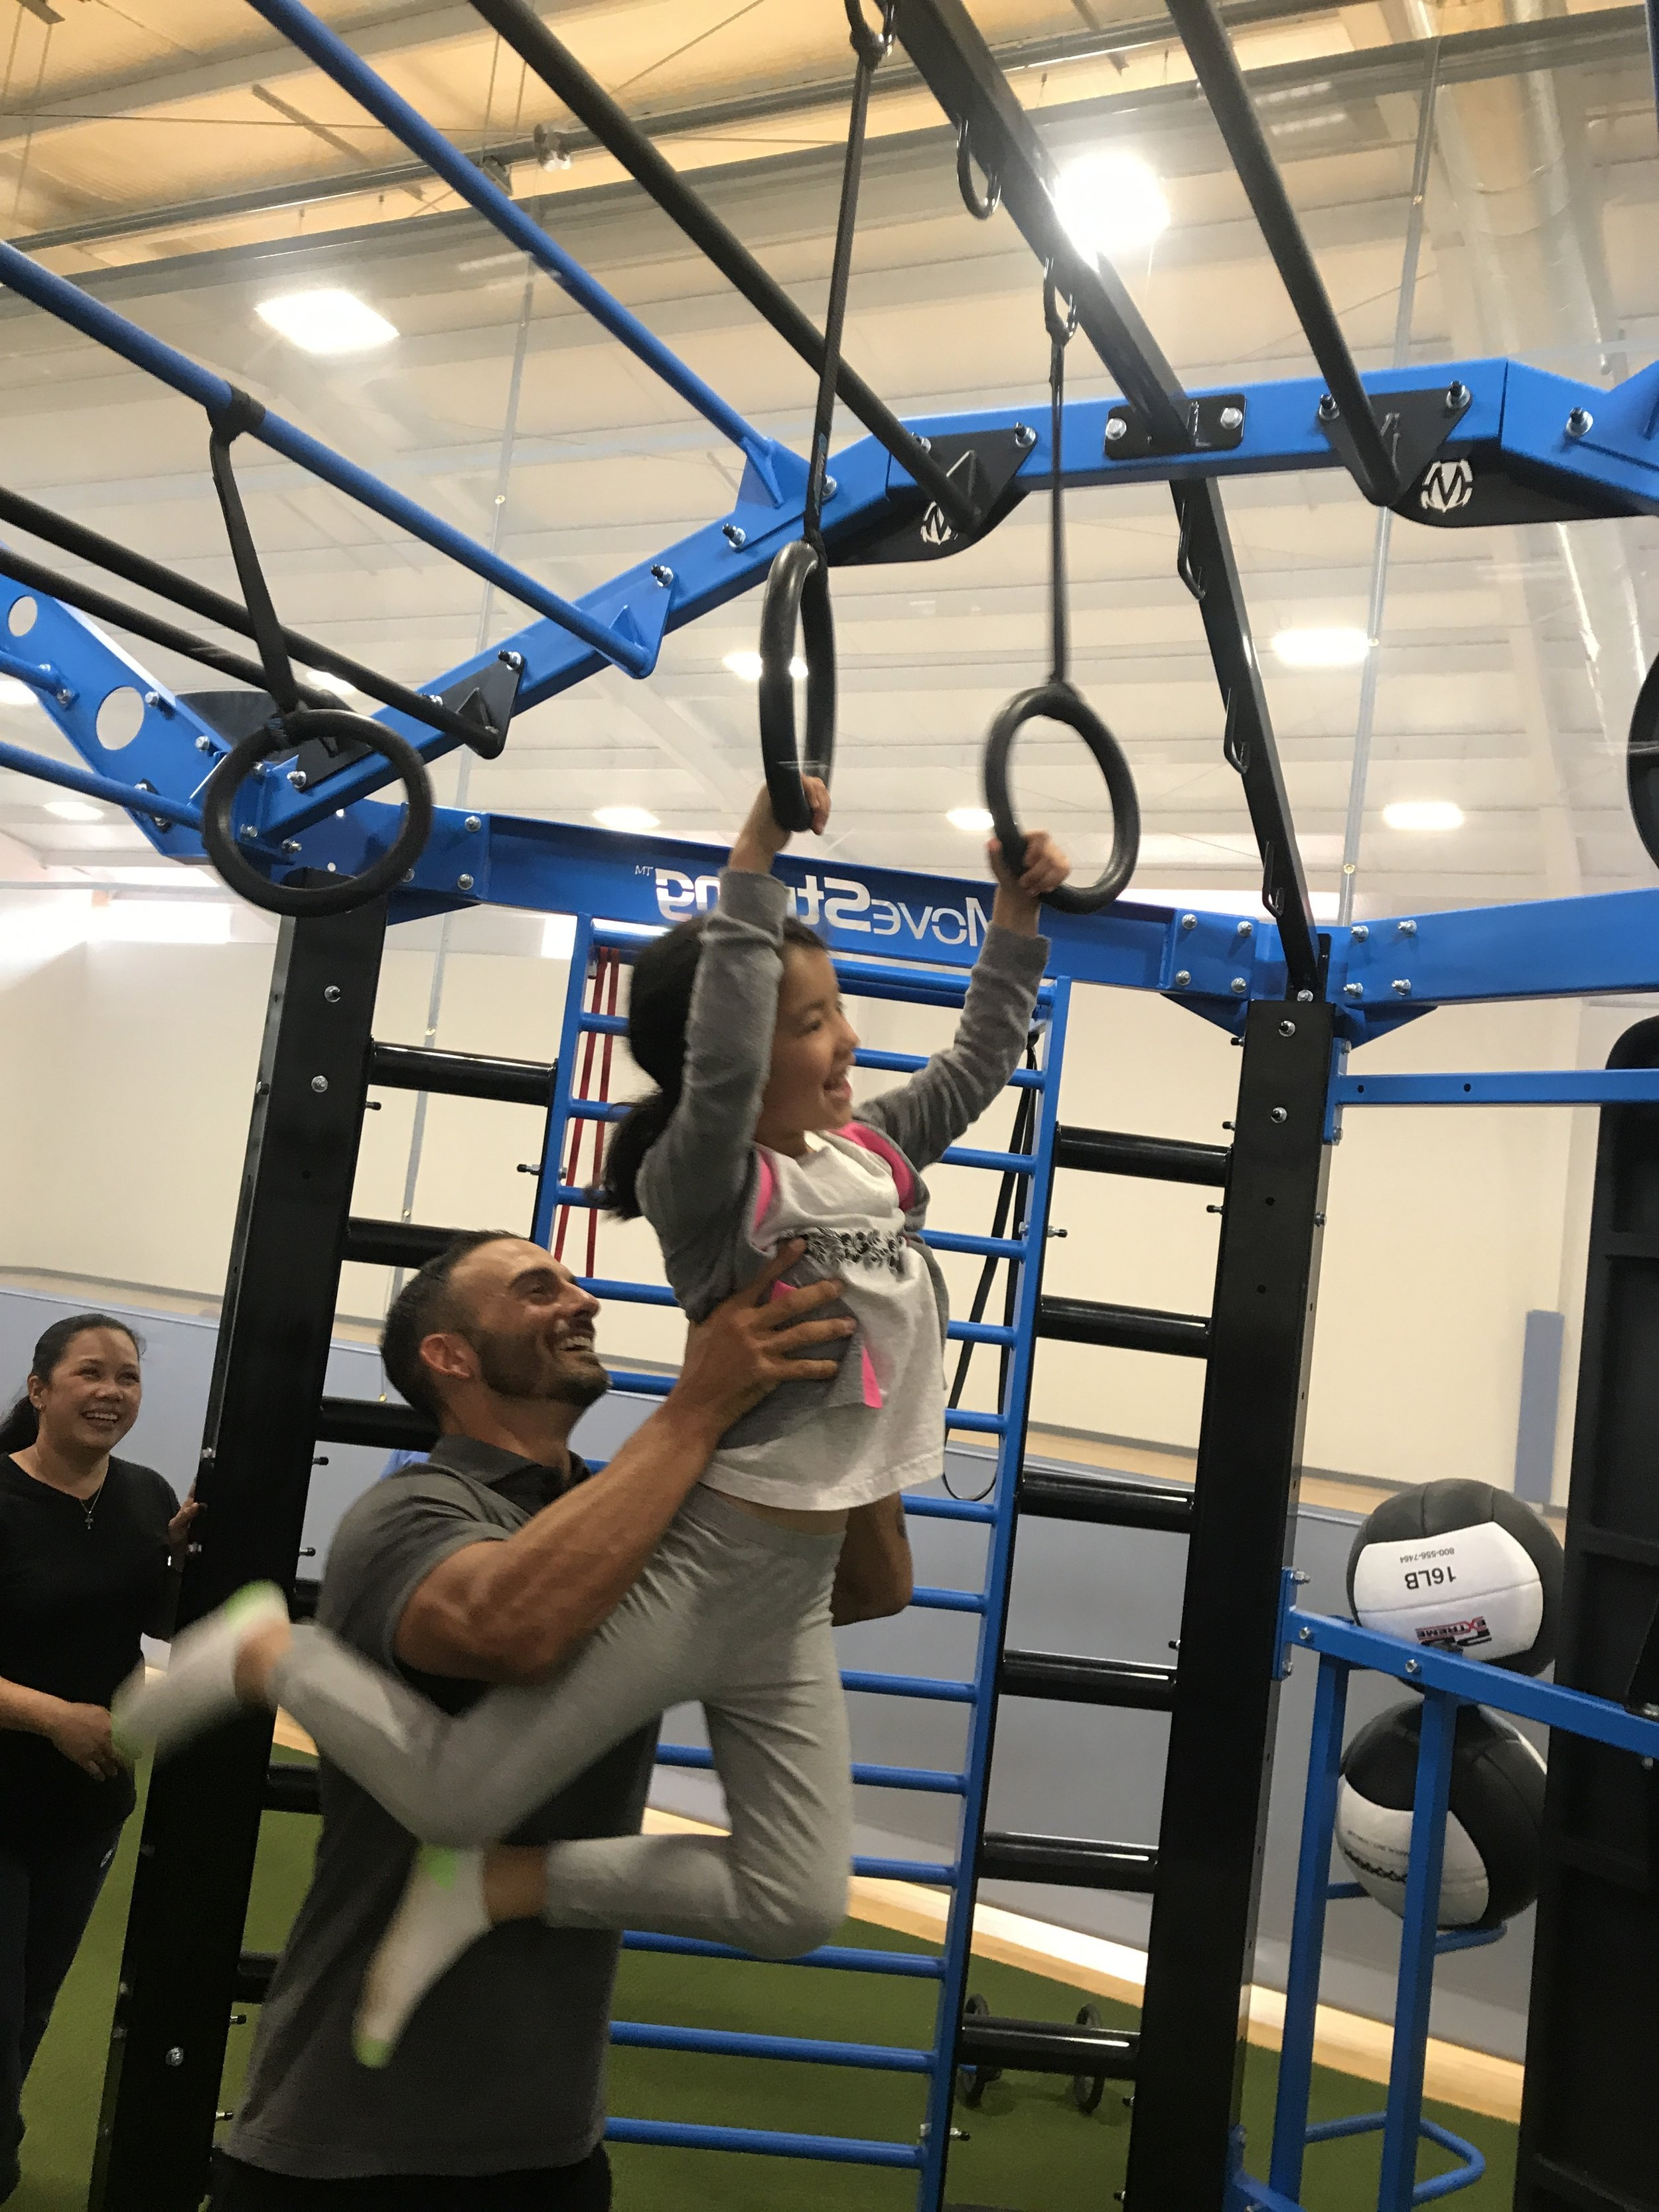 MoveStrong for youth fitness